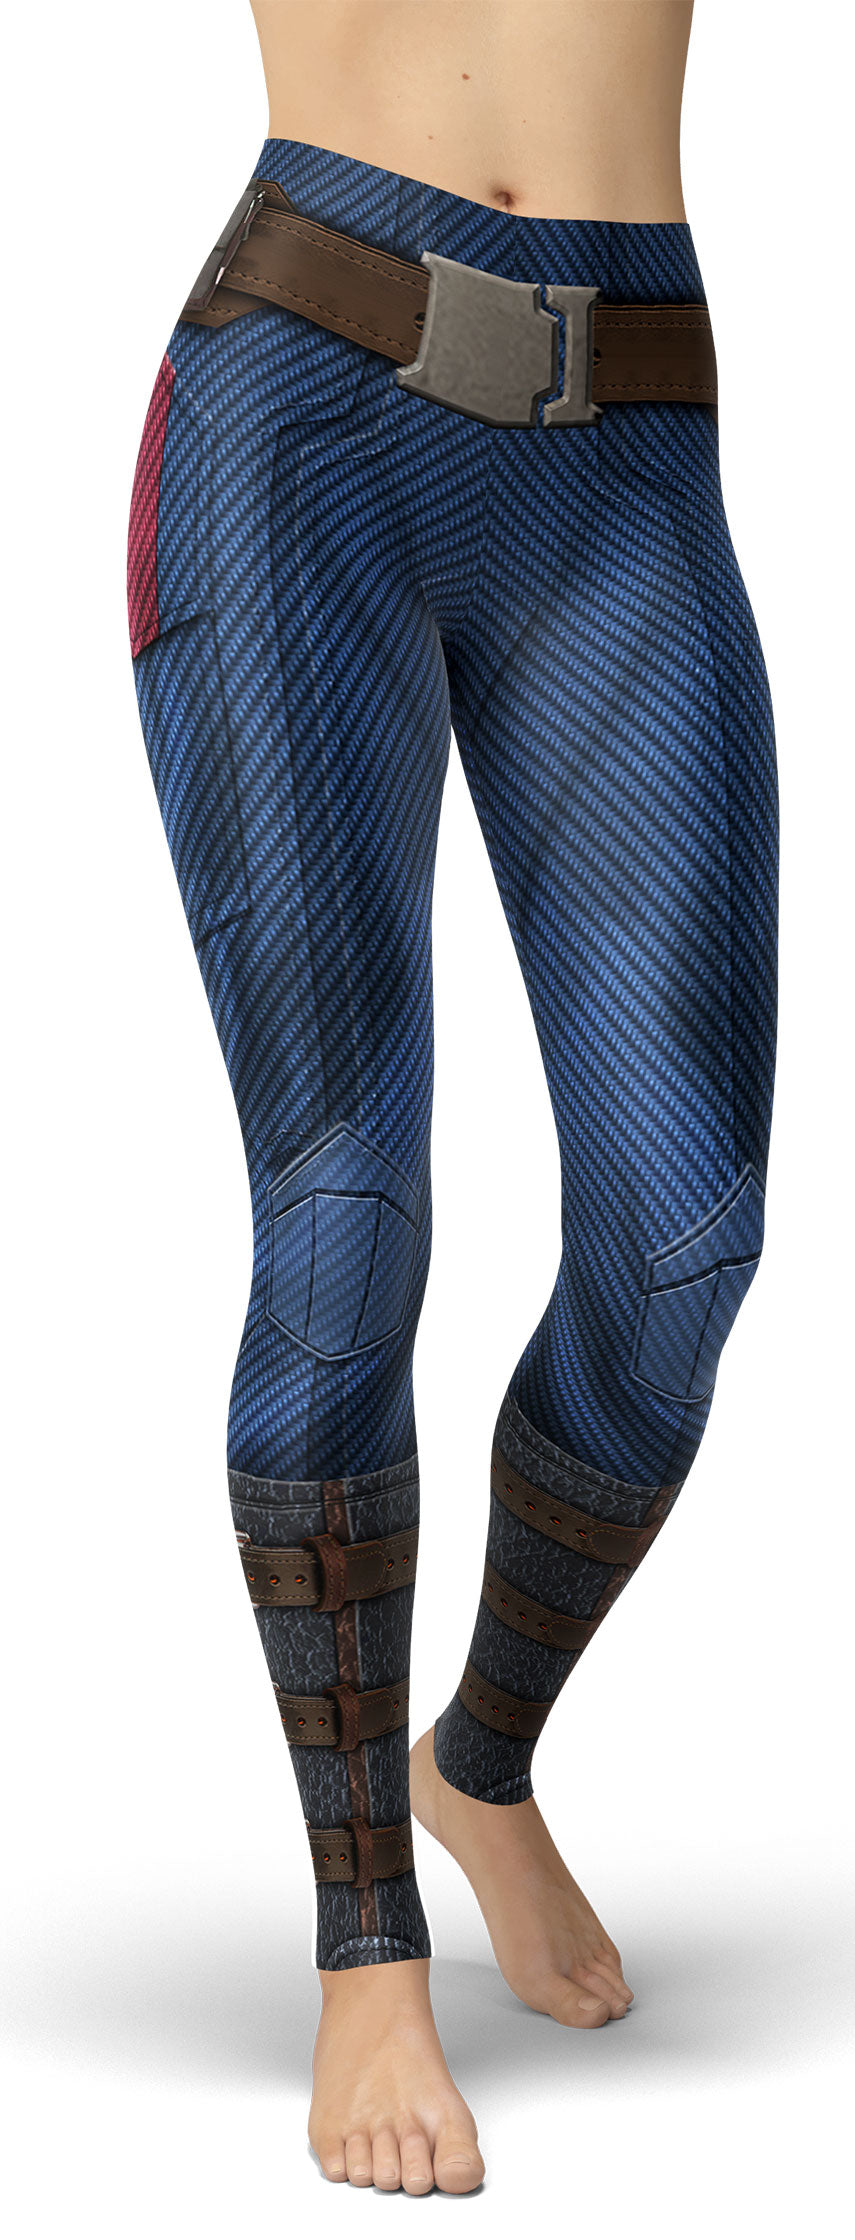 Avengers: Endgame Captain America Leggings